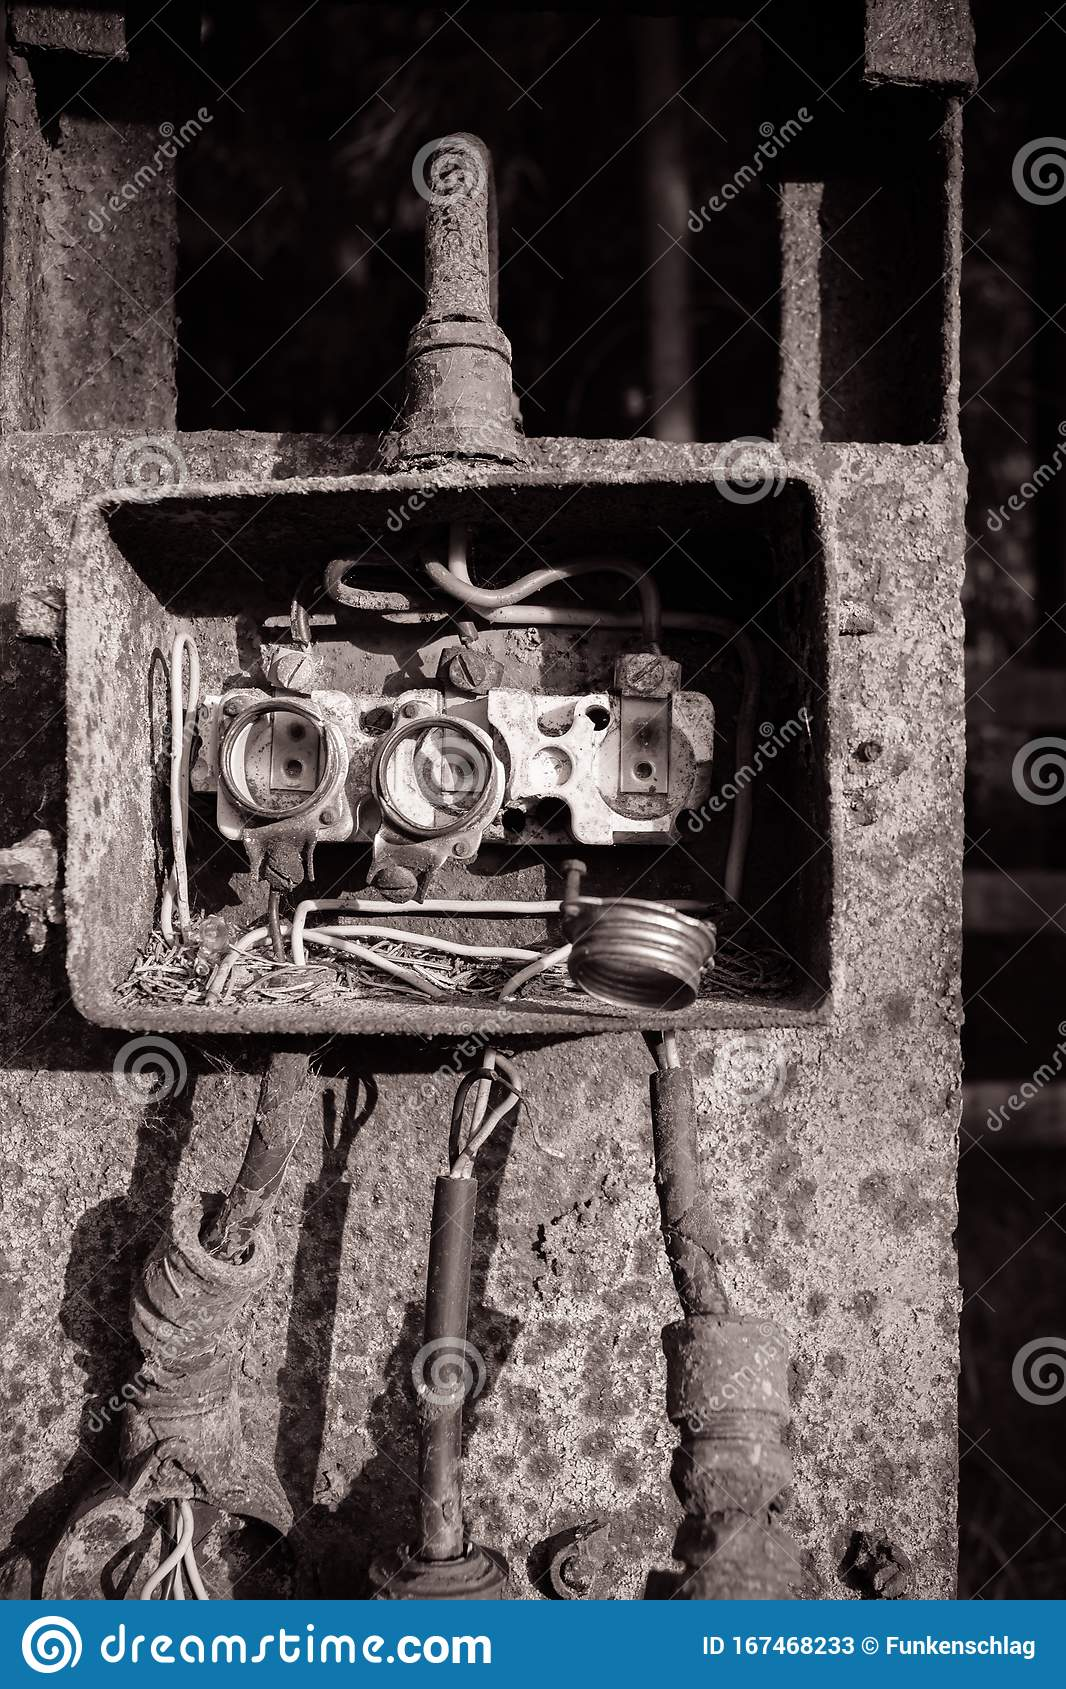 old fuse box in black and white stock image - image of grunge, safety:  167468233  dreamstime.com